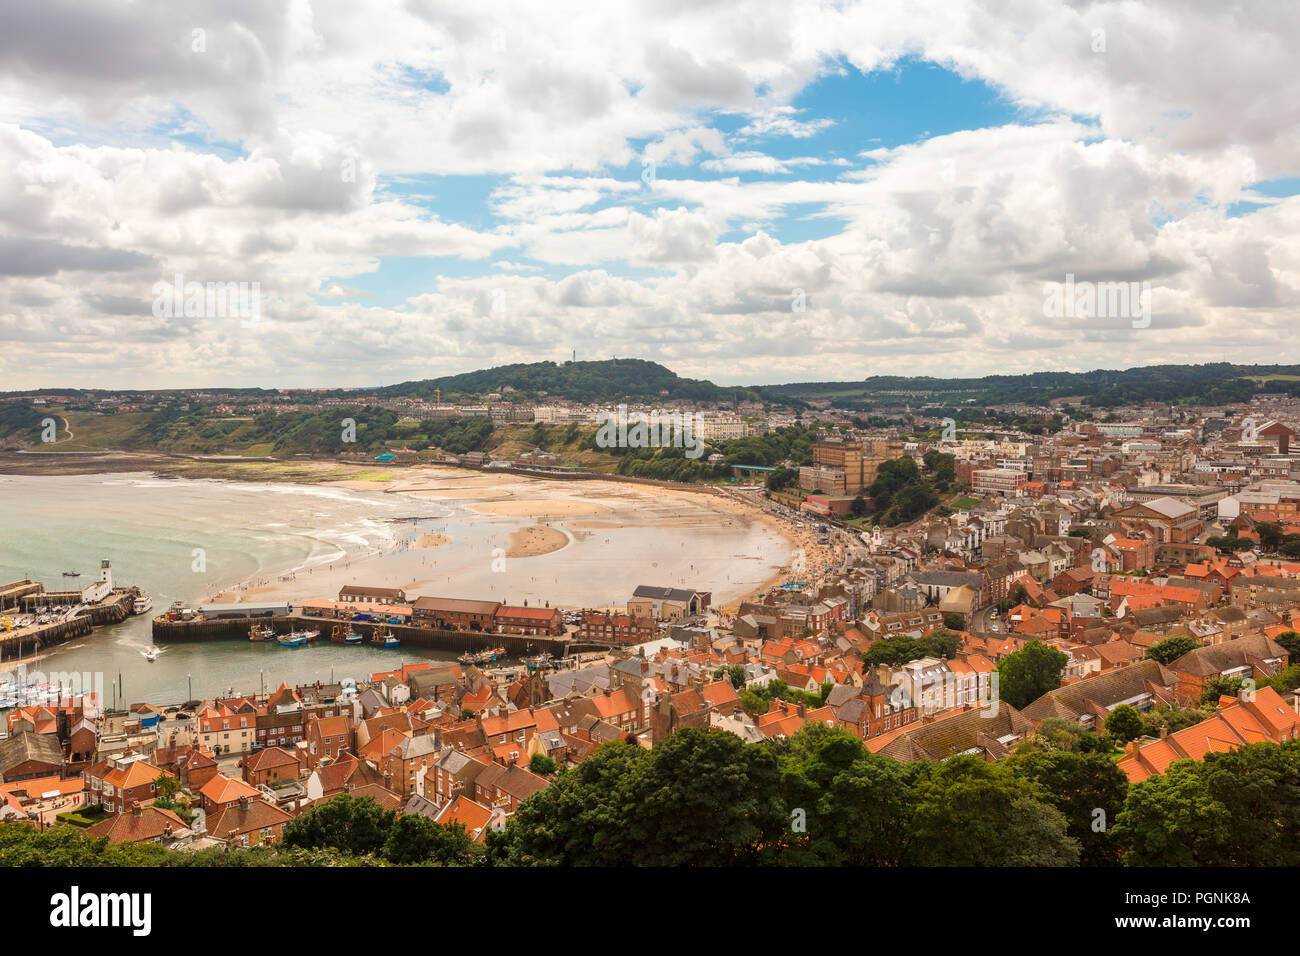 Tide is out at the South Bay in Scarborough, North Yorkshire, scenic view. - Stock Image